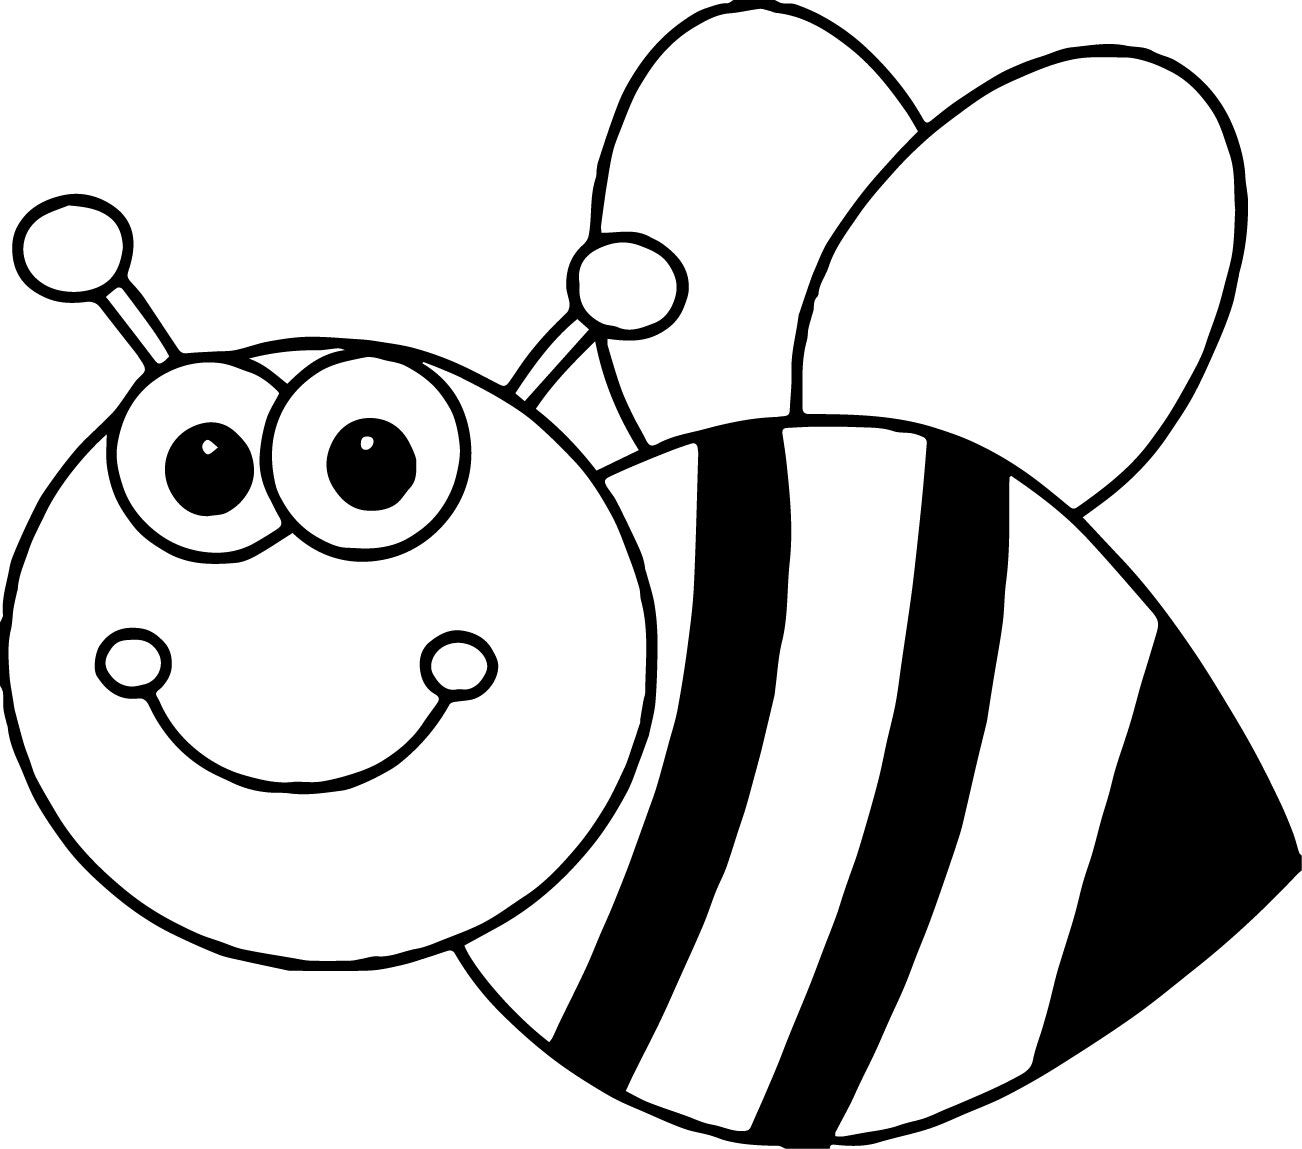 This Is Bumble Bee Coloring Pages Bee Coloring Pages Coloring Ideas 19481 You Can Download And Print Bumble Bee Bee Coloring Pages Bee Template Bee Printables